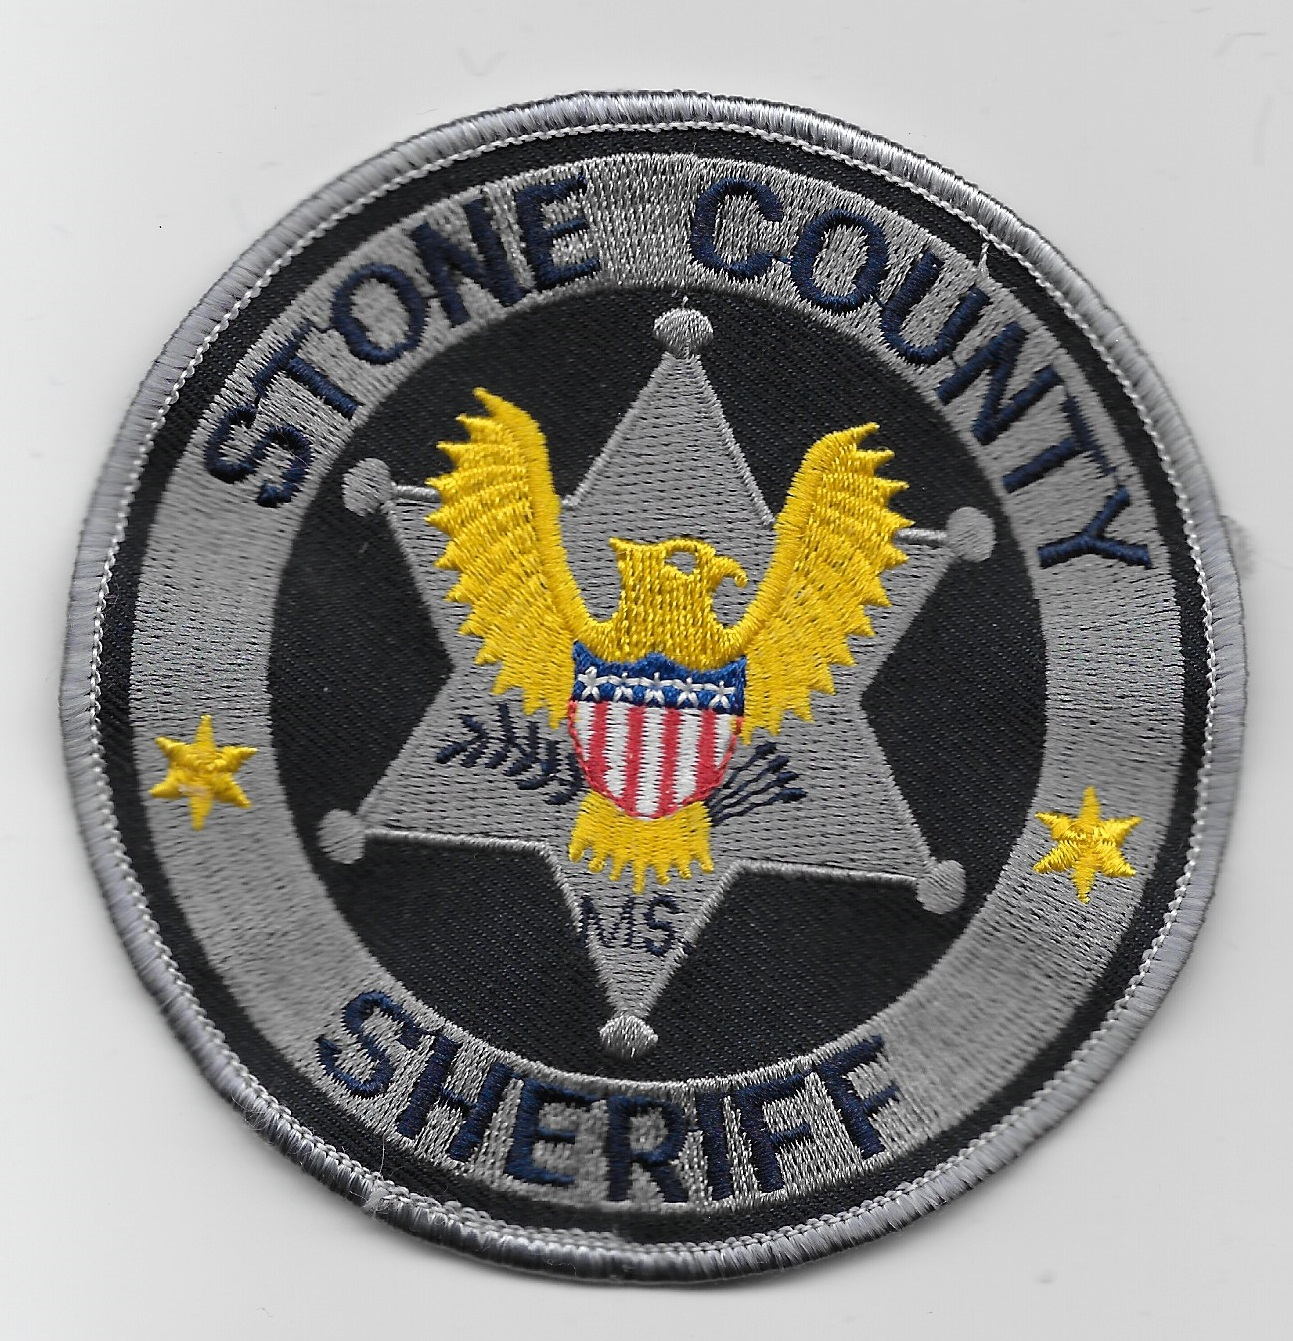 Stone County Sheriff MS